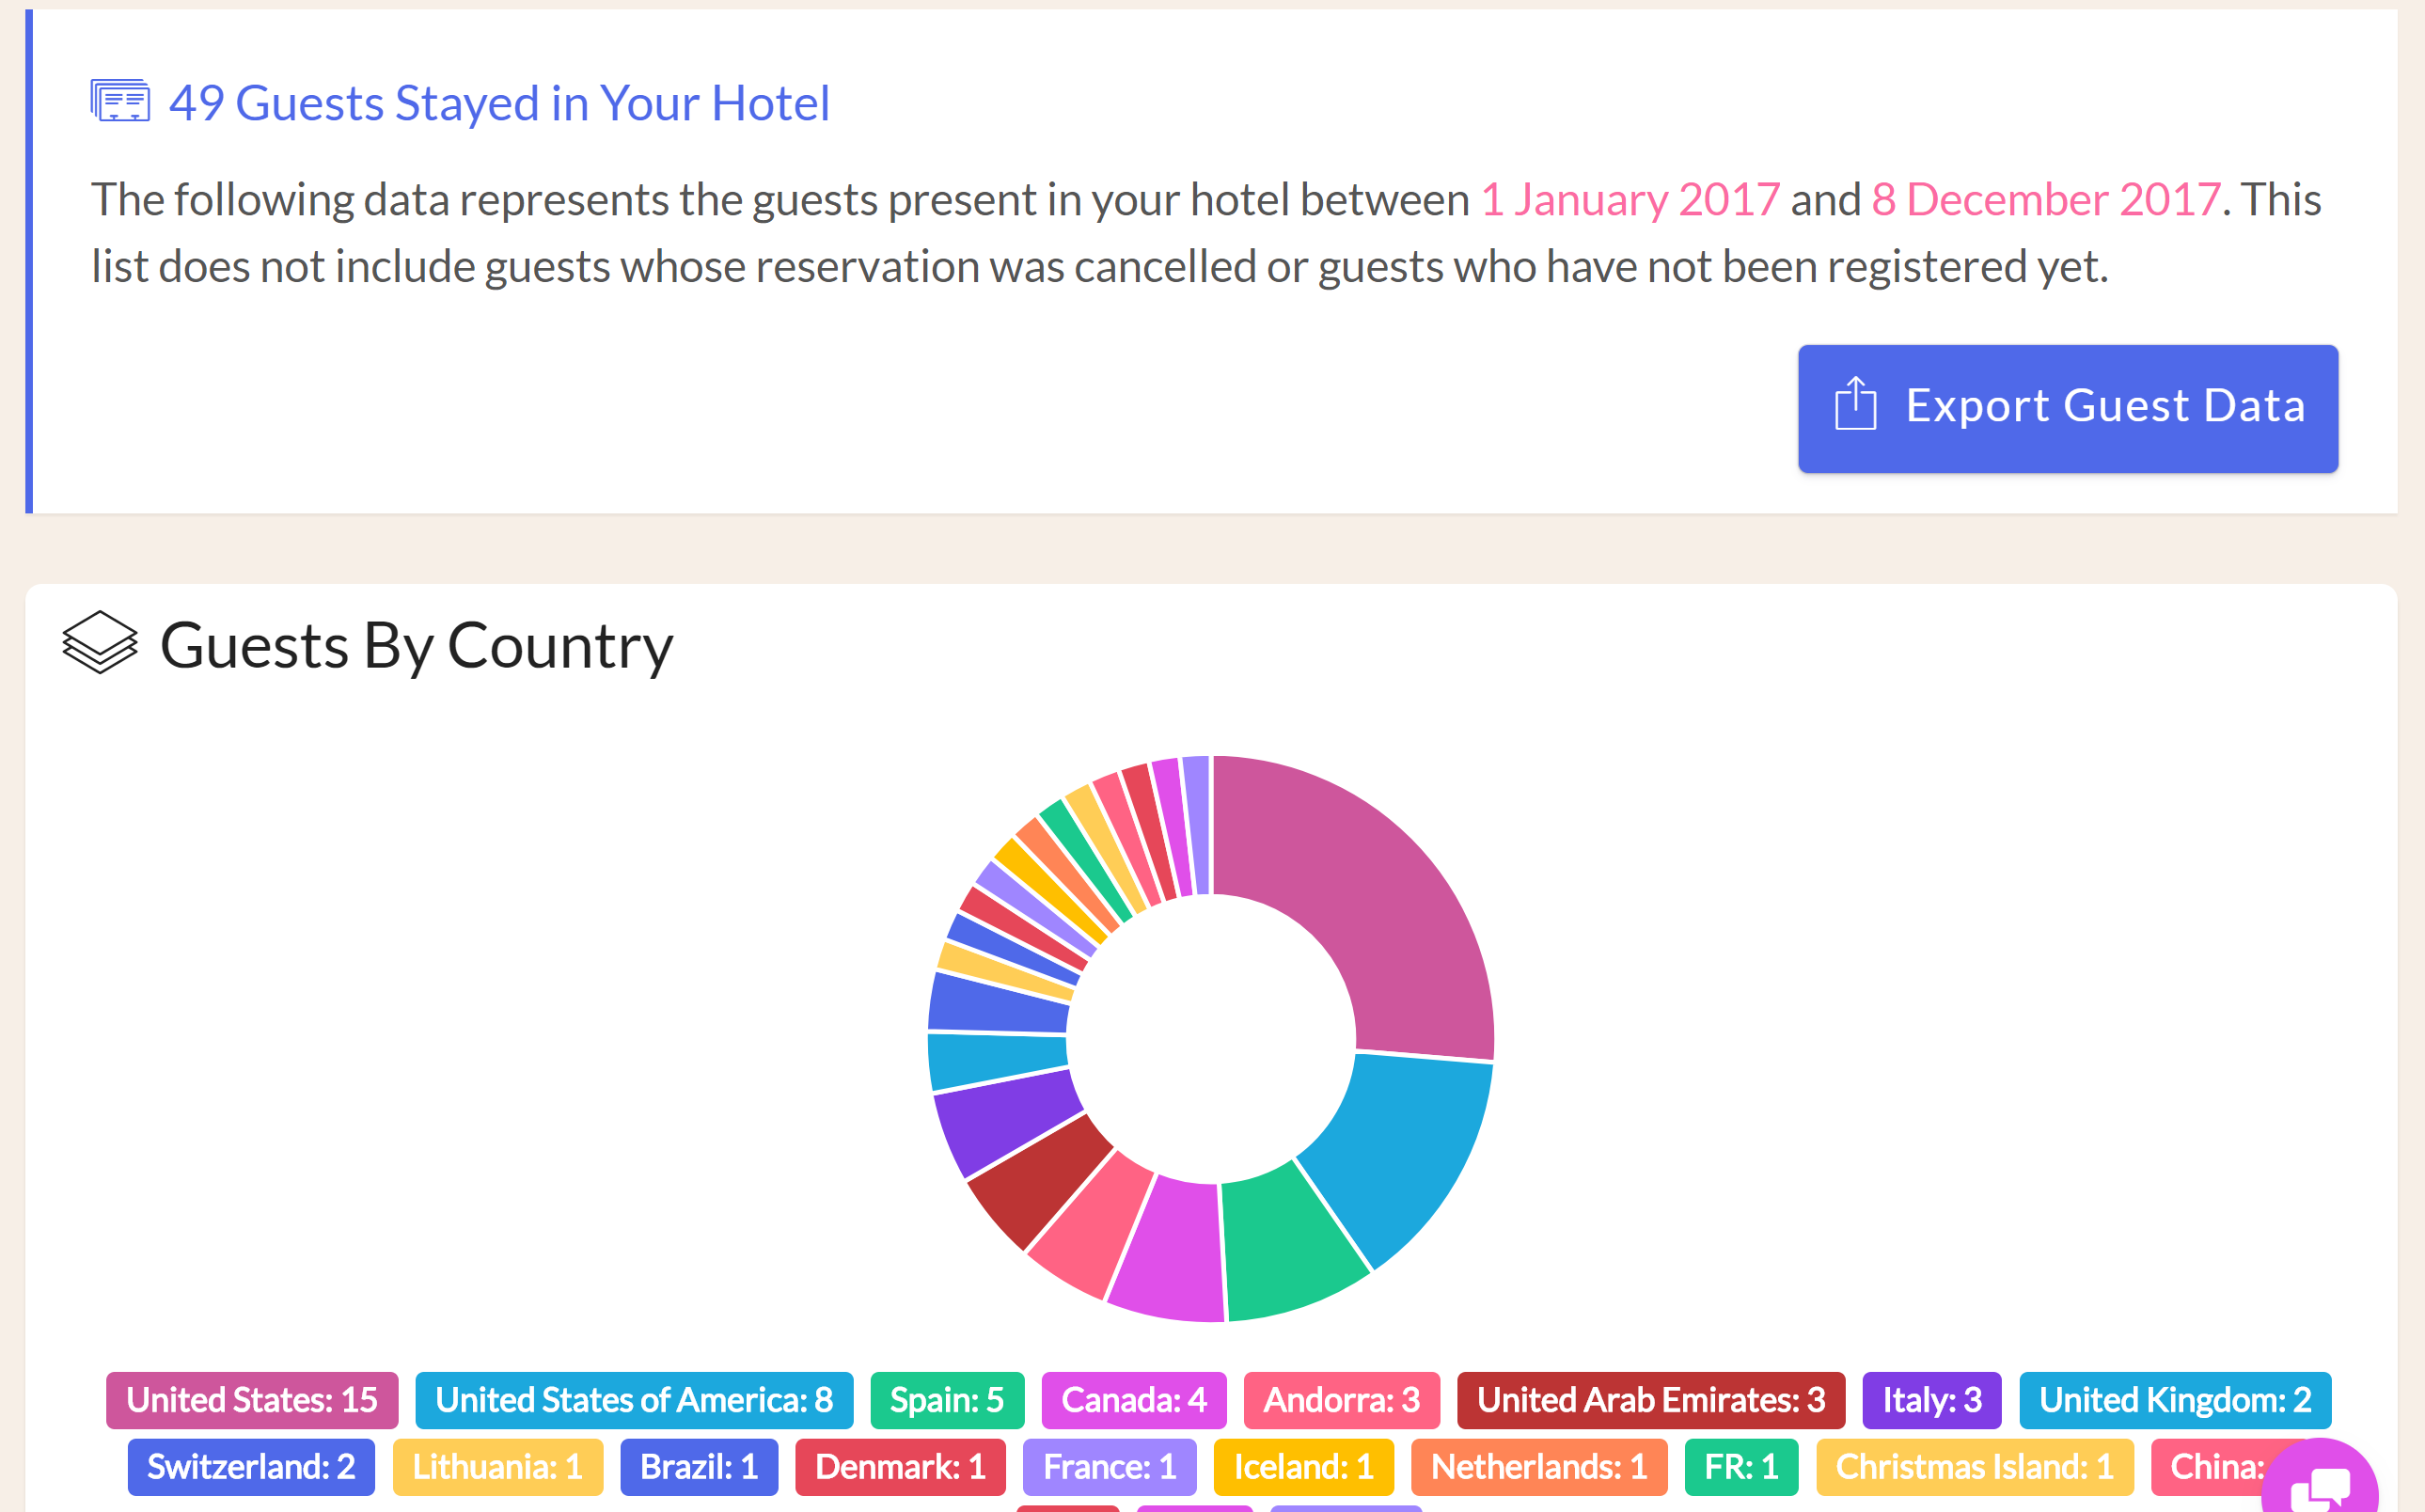 Hotel Charts & Graphs In our latest update to the Front Desk manager, we have added charts and graphs throughout the application to allow hoteliers to get an idea of booking sources and revenue distribution at a glance. There is no need to export your data to generate visual analysis of your hotel's business. hotel front desk manager, hotel night audit rooms reports, hotel night audit booking reports, hotel night audit ota's reports, hotel night audit country reports, hotel night audit counter reports, hotel night audit revenue reports, hotel night audit tax reports